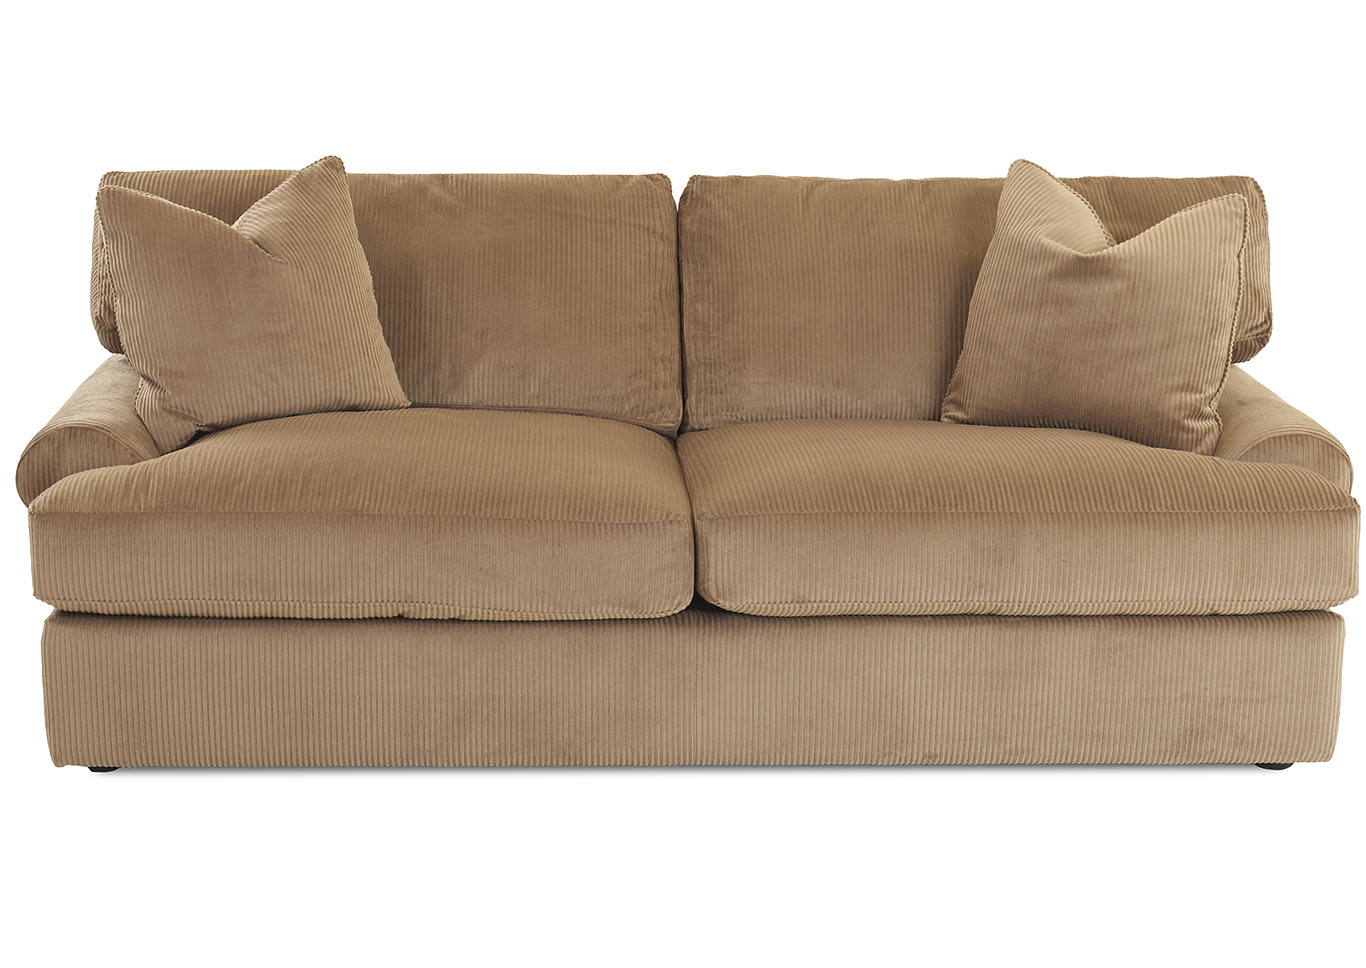 Adelyn Rich Brown Stationary Fabric Sofa,Klaussner Home Furnishings